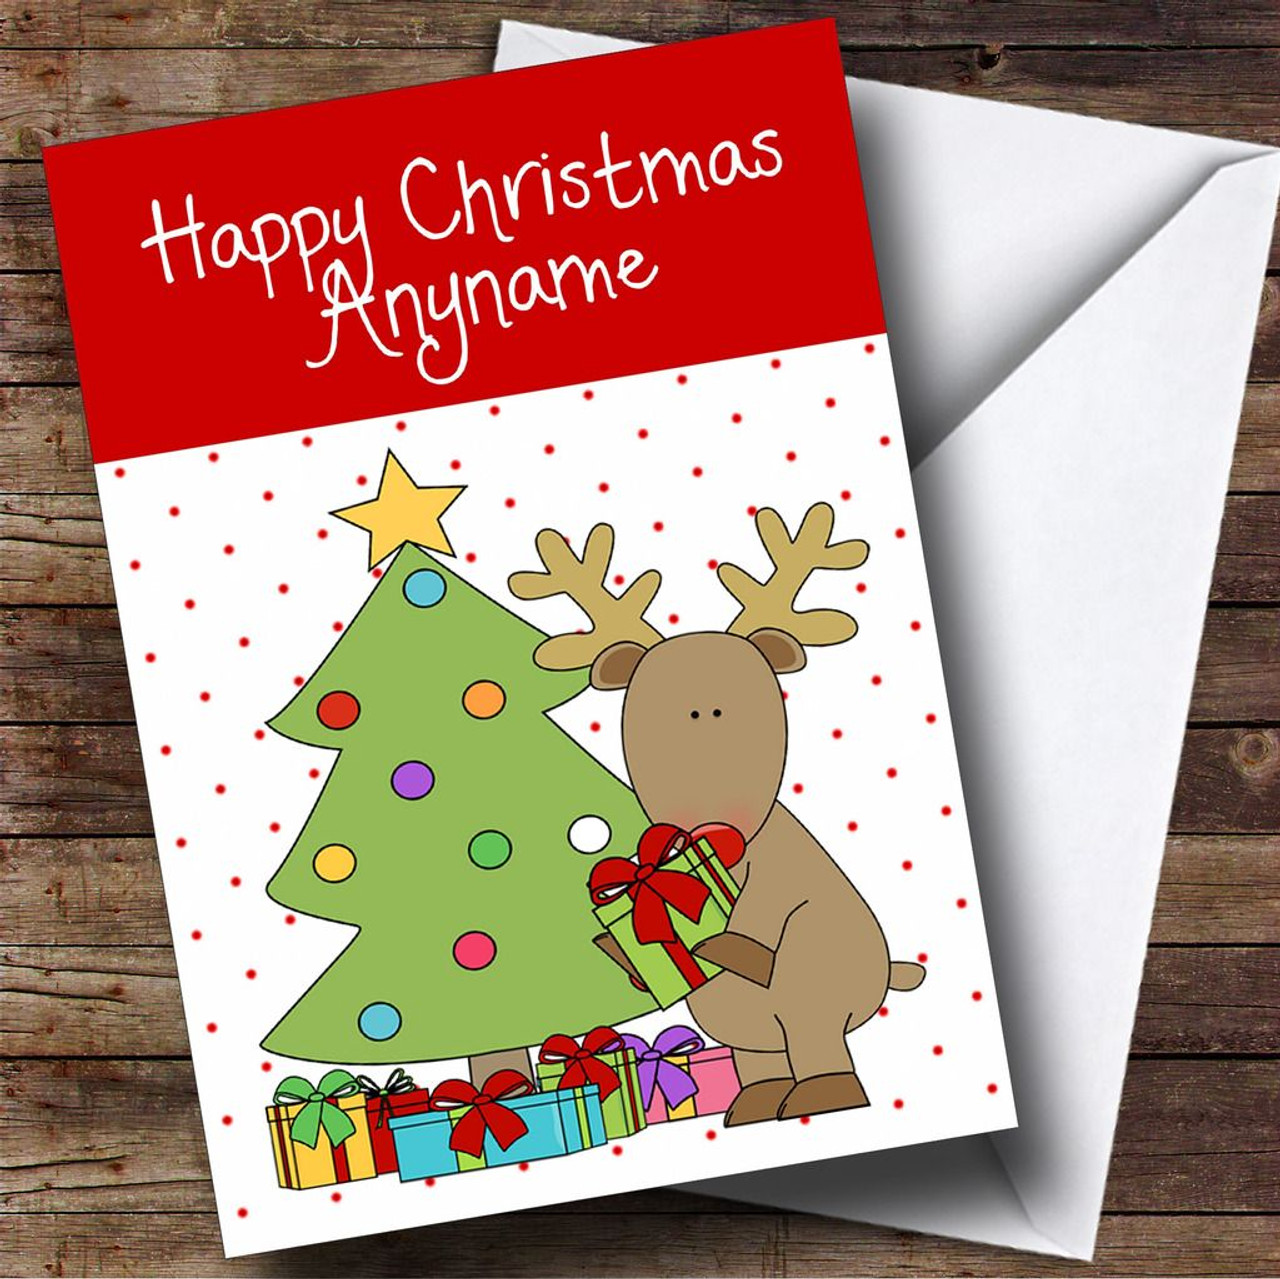 Christmas Presents Under Tree.Spotty Reindeer Presents Under Tree Children S Personalised Christmas Card